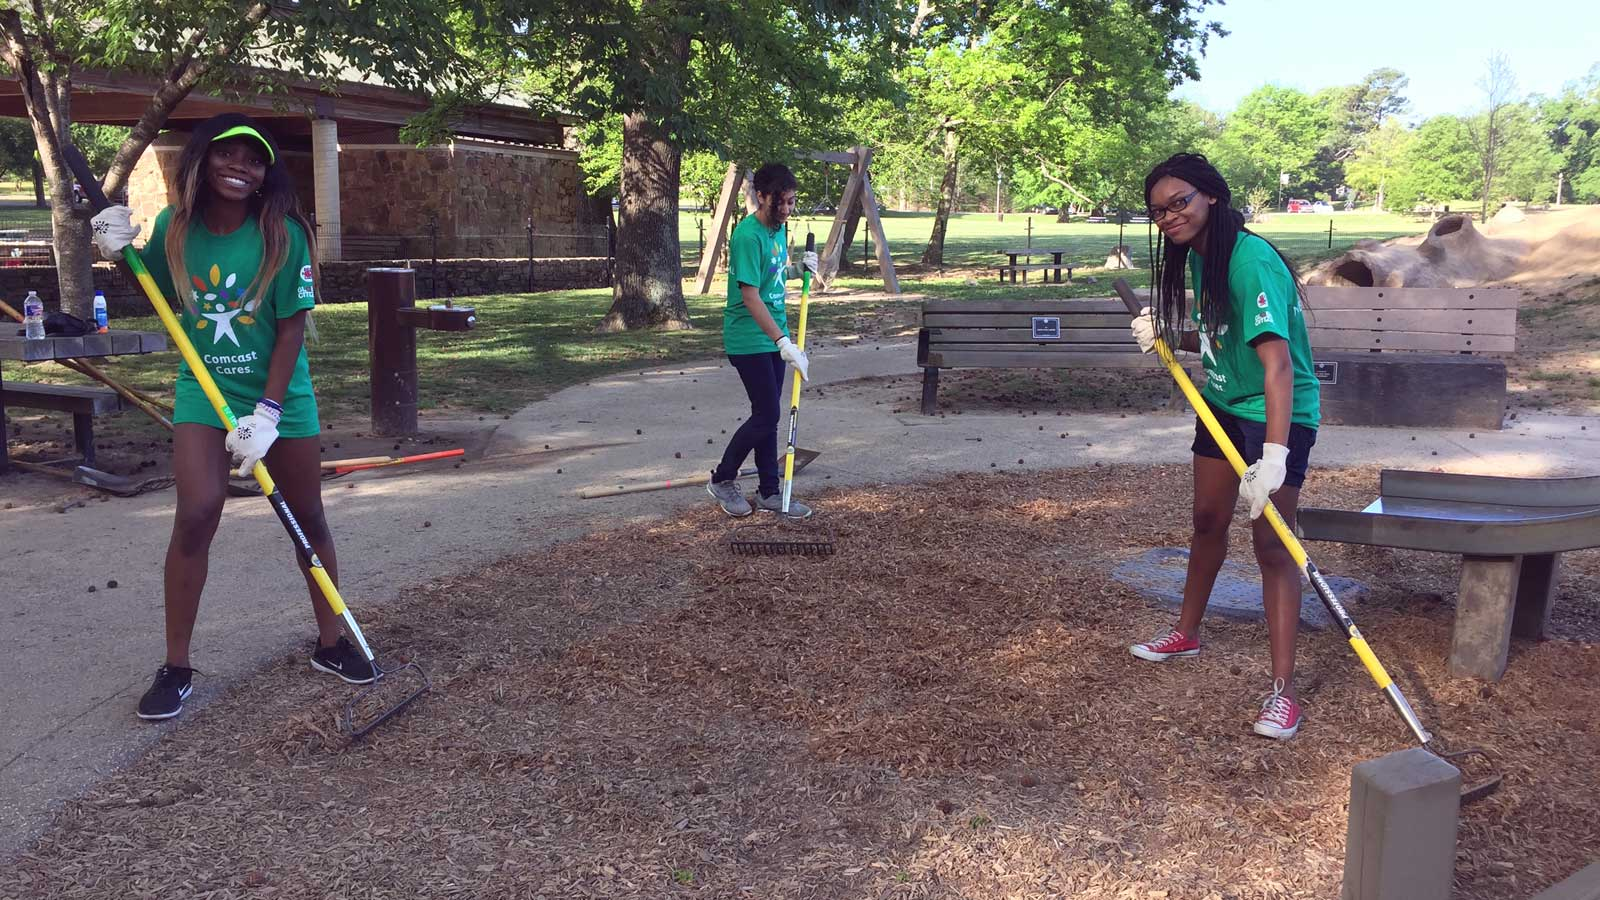 Comcast Cares Day volunteers in Overton Park